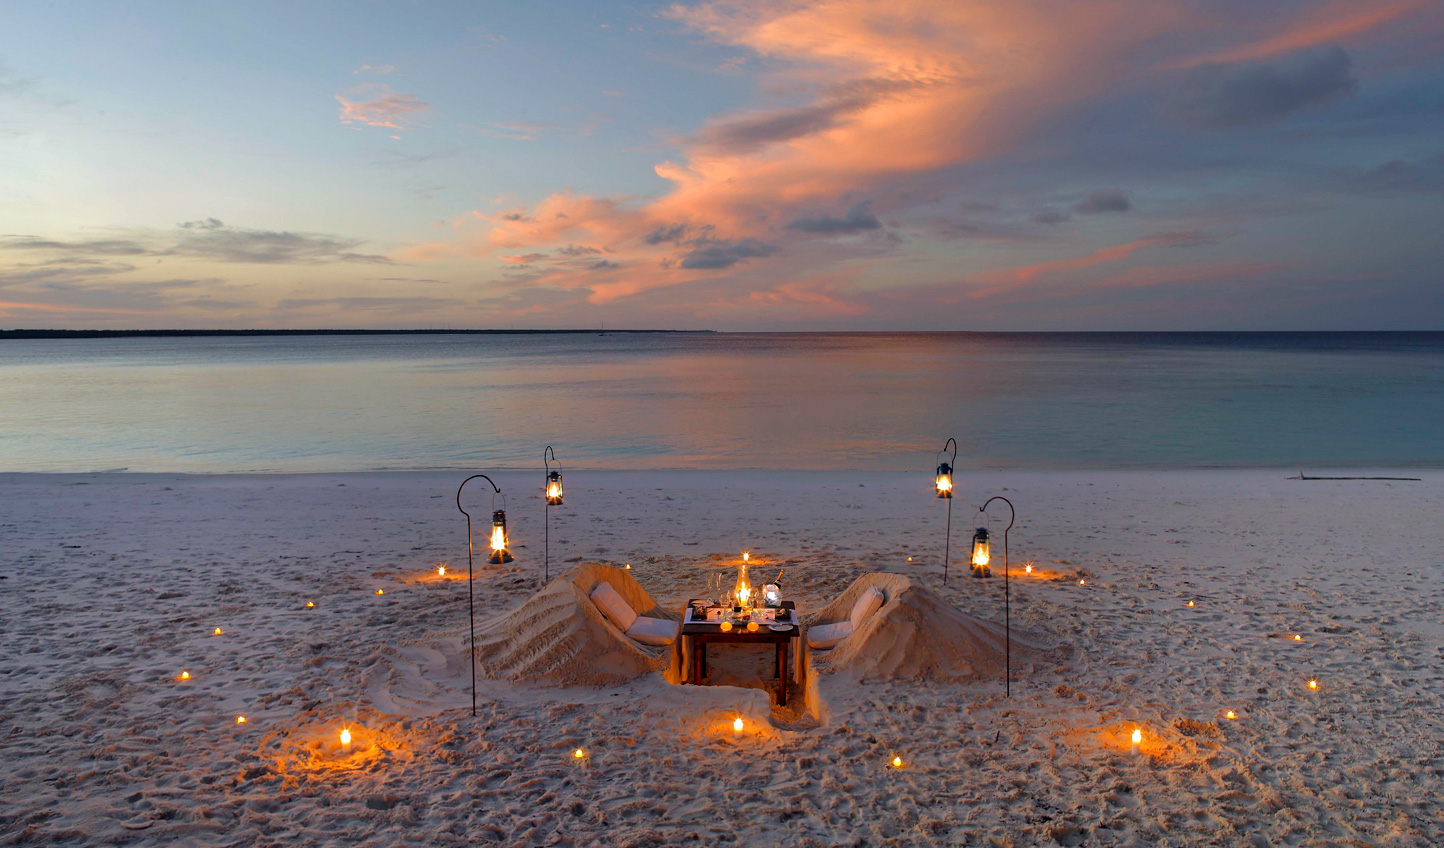 Sink into the sand over a private dinner for two